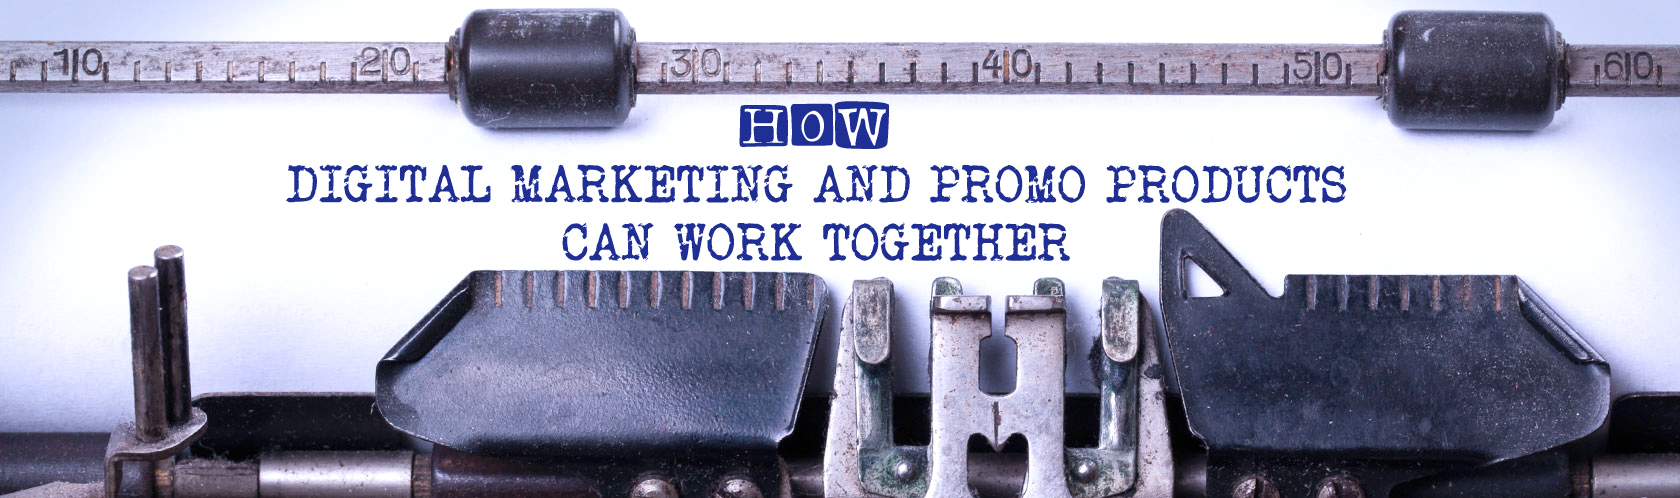 How Digital Marketing and Promo Products Can Work Together